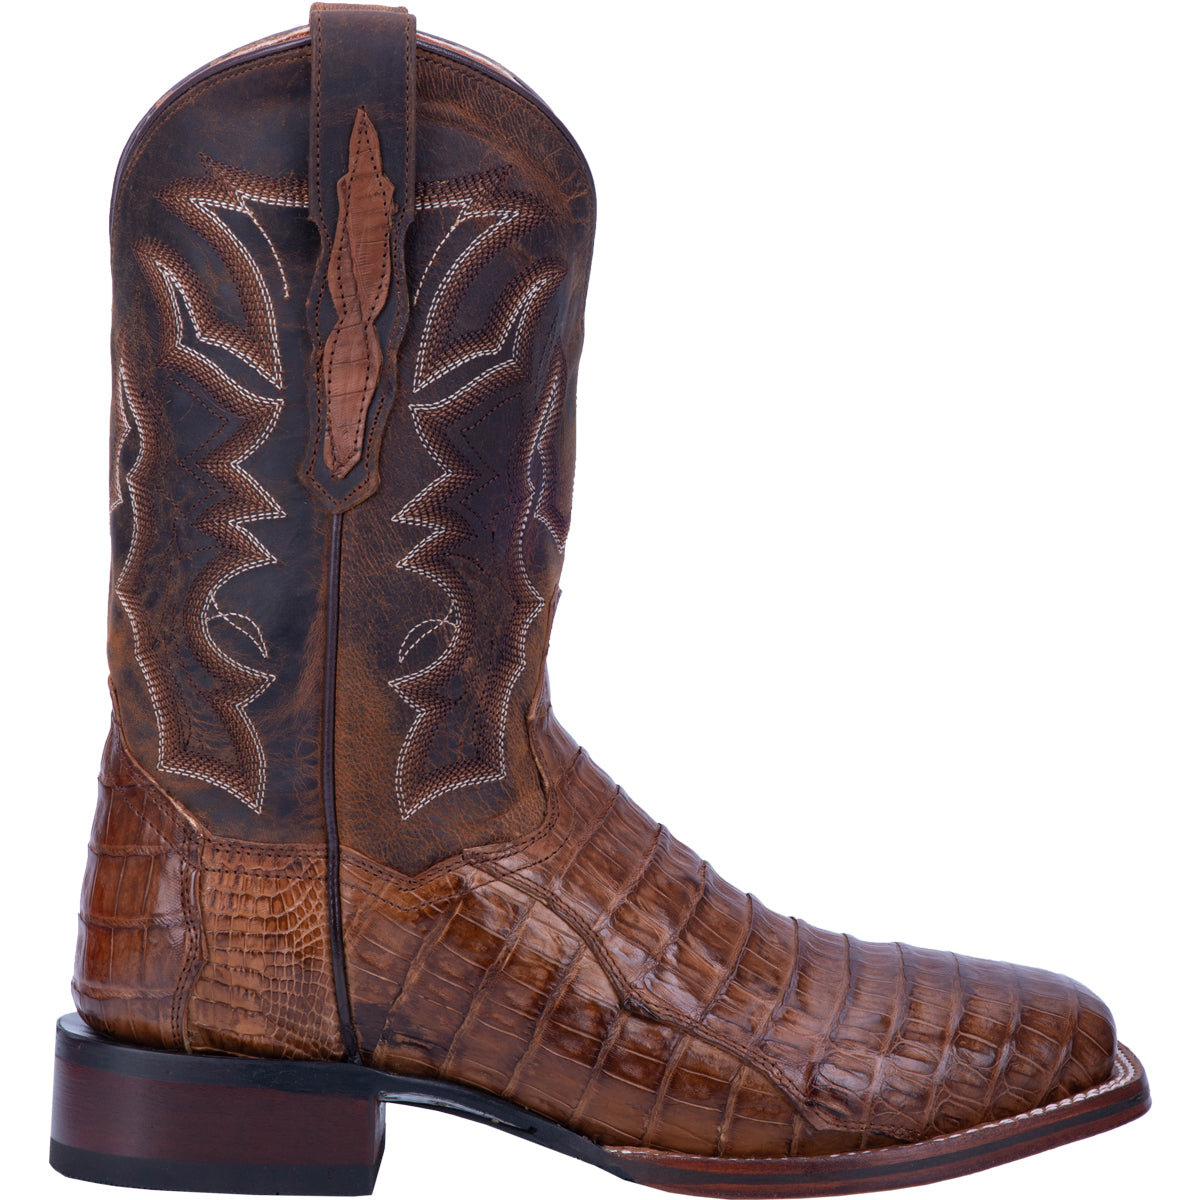 KINGSLY CAIMAN BOOT 5547776639018